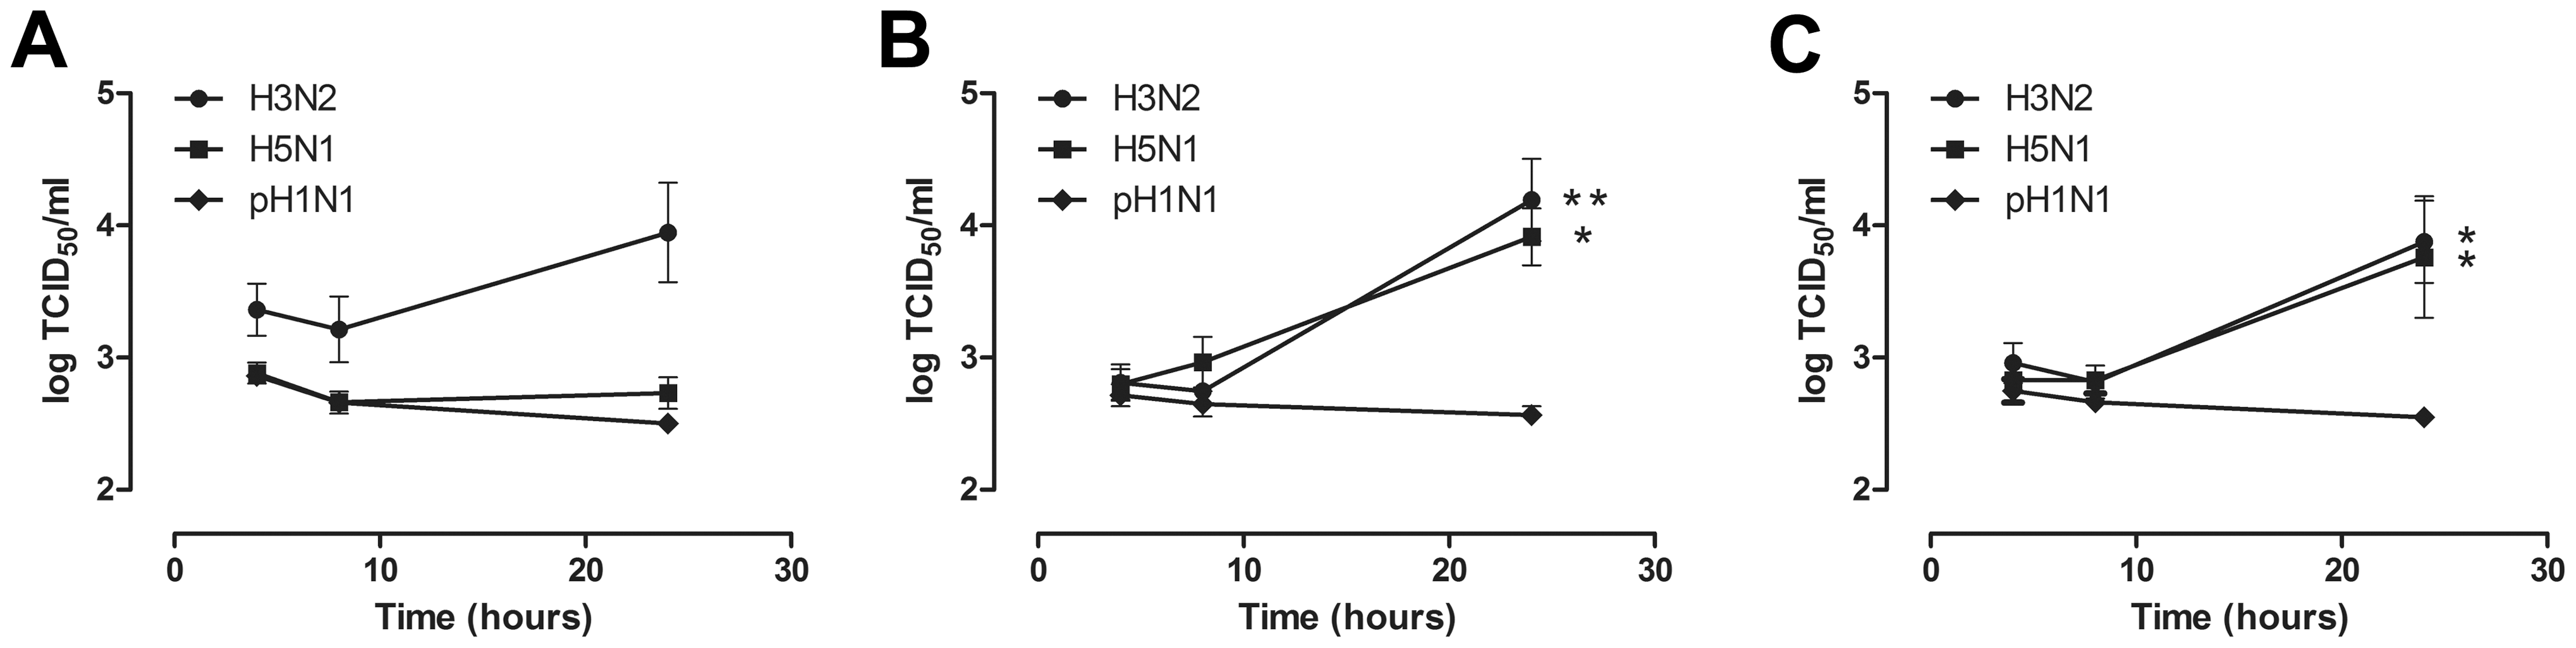 Virus production in alveolar macrophages and monocyte-derived macrophages after H3N2, H5N1 or H1N1 virus infection.